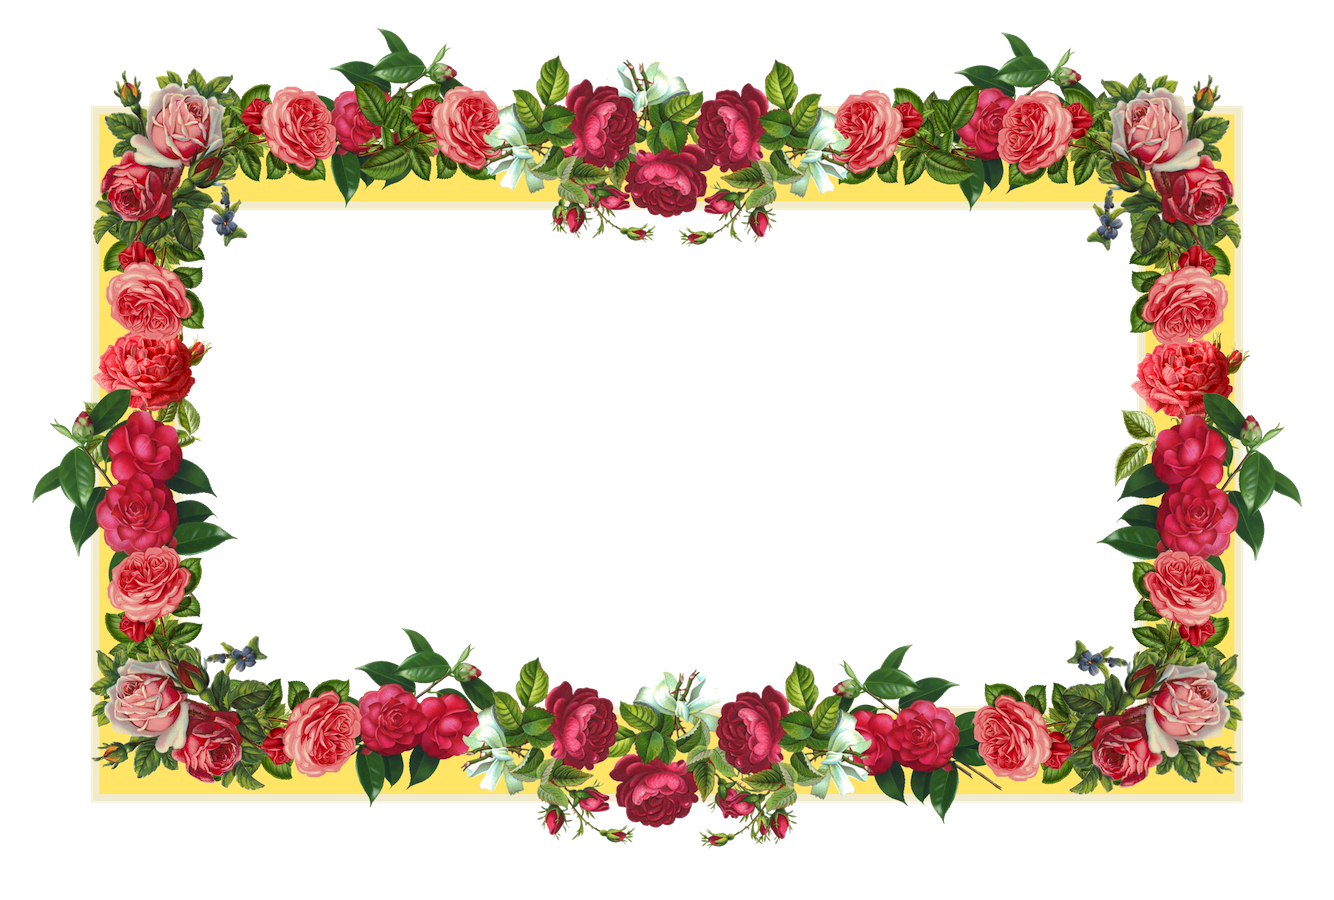 Rose Flower Border Design Frame - Border Designs - ClipArt ...